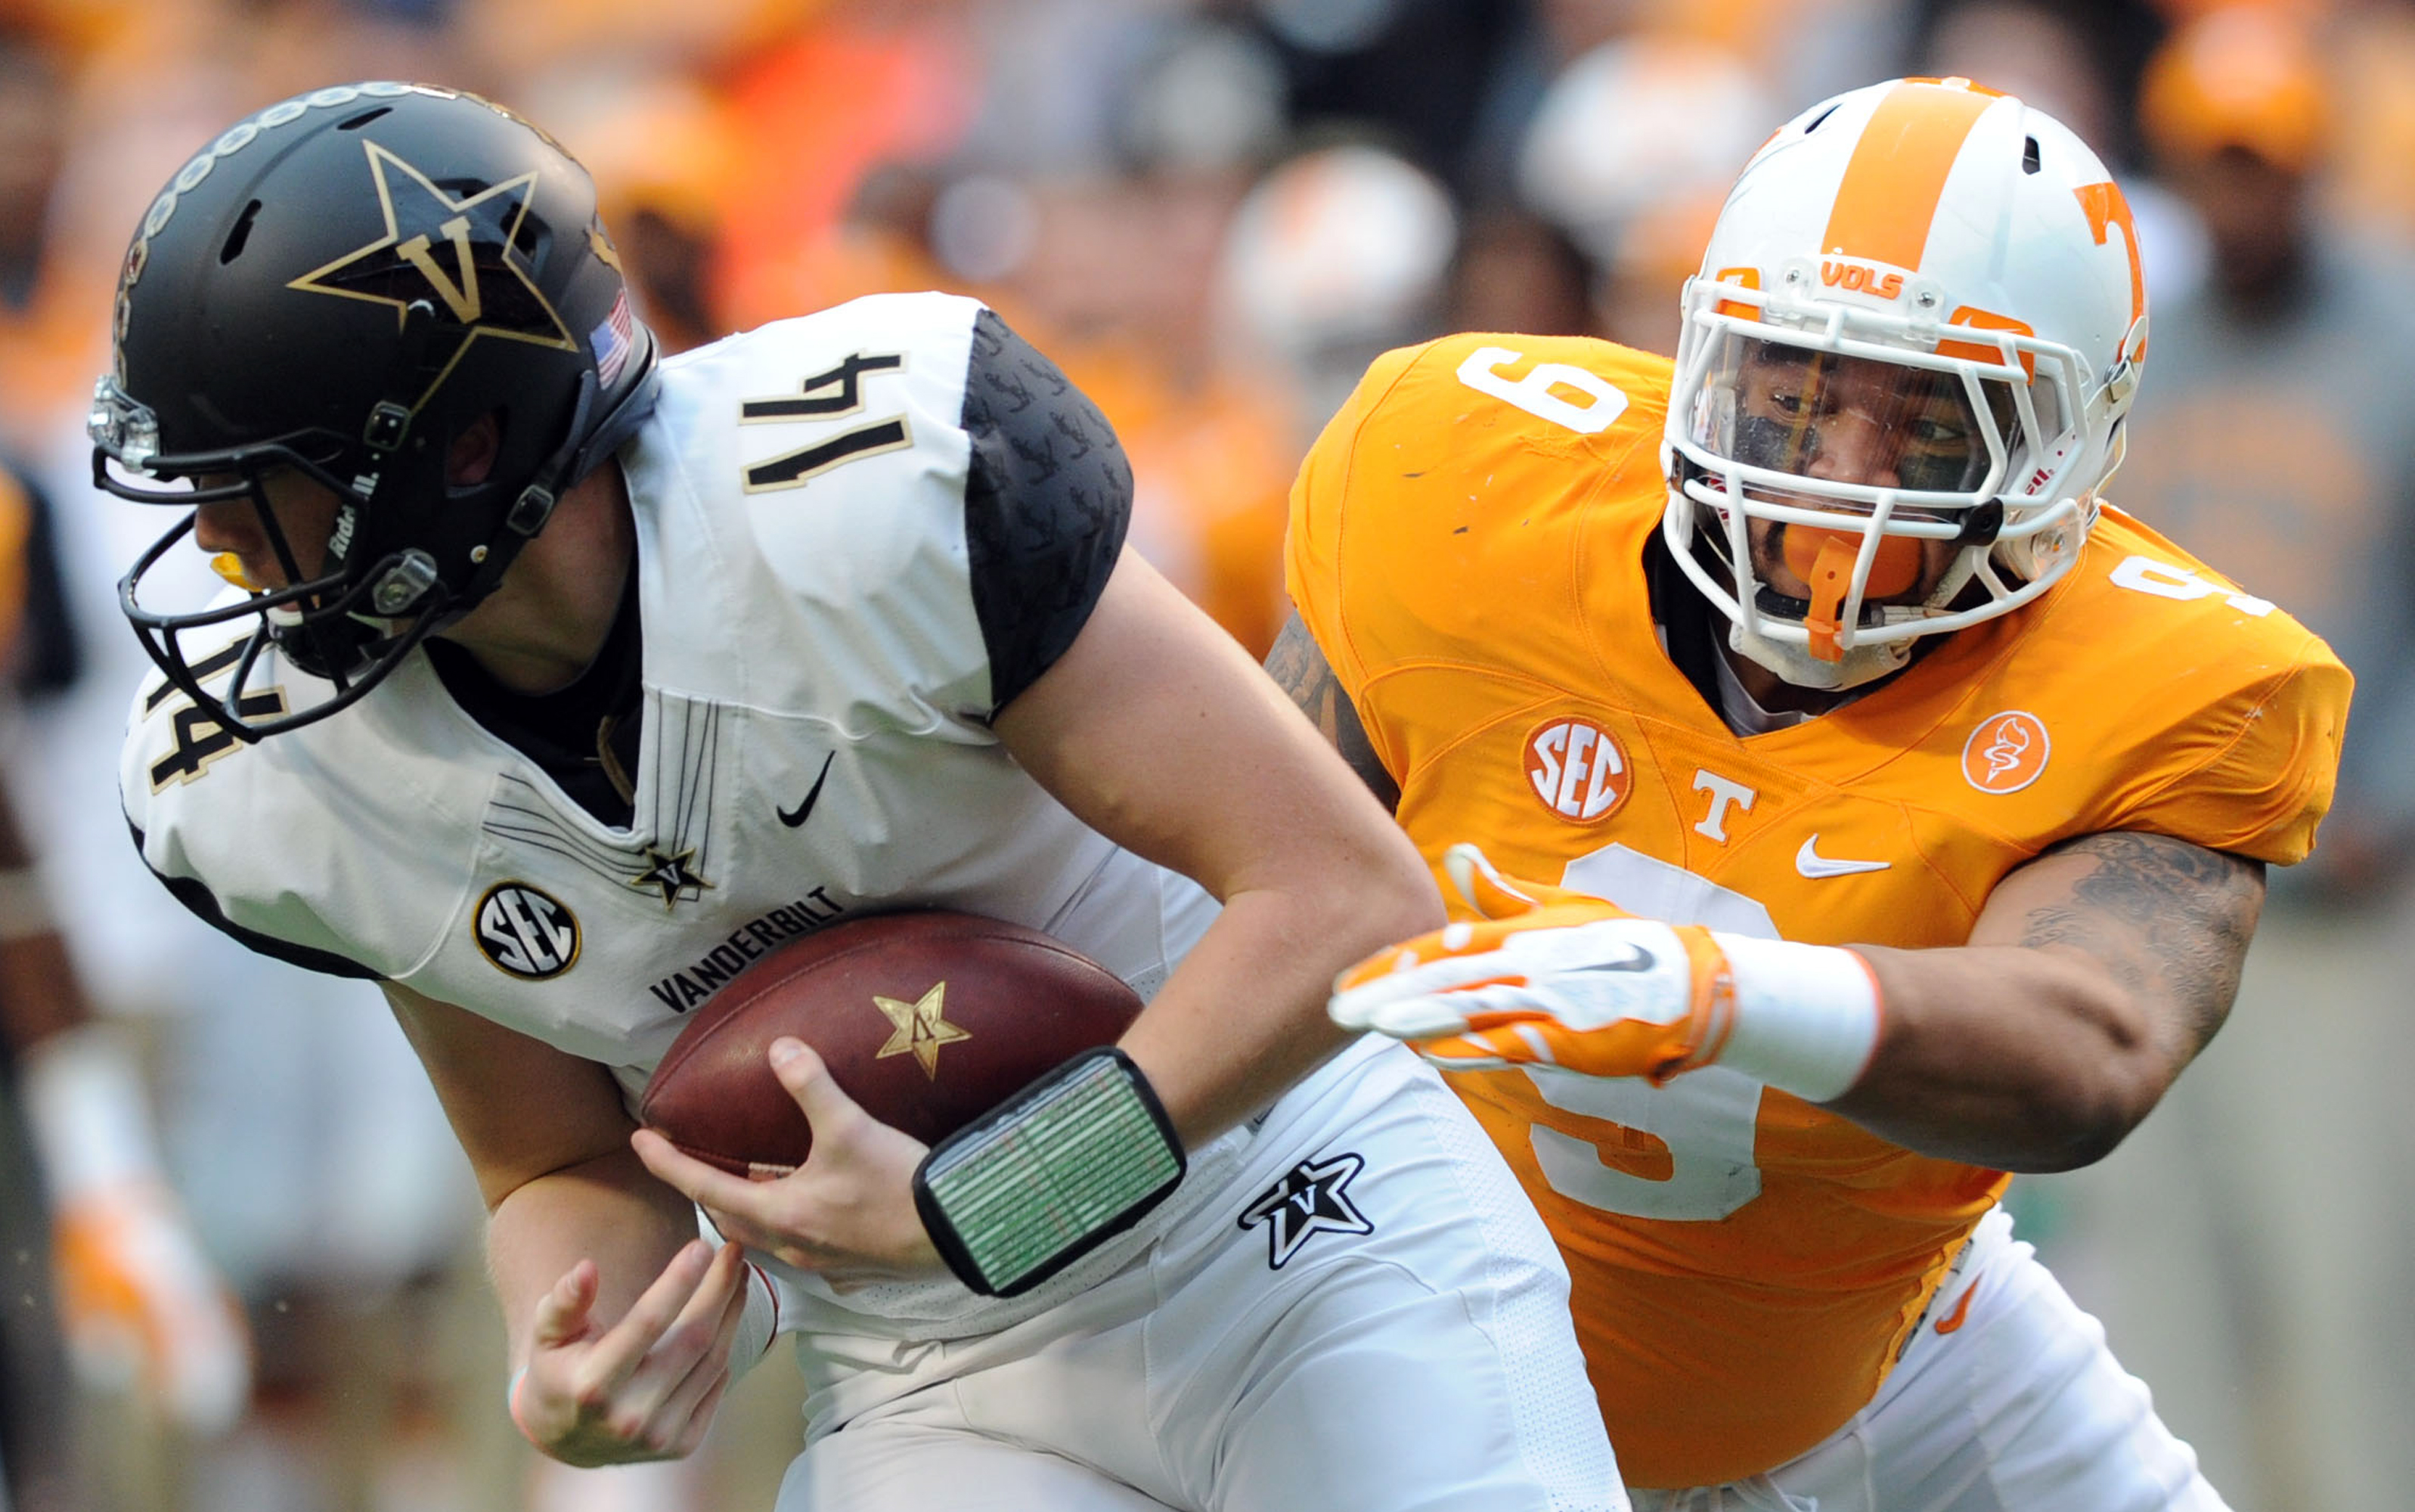 Tennessee defensive end Derek Barnett (9) chases down Vanderbilt quarterback Kyle Shurmur (14) during the first half of an NCAA college football game in Knoxville, Tenn., Saturday, Nov. 28, 2015. (Michael Patrick/Knoxville News Sentinel via AP) MANDATORY